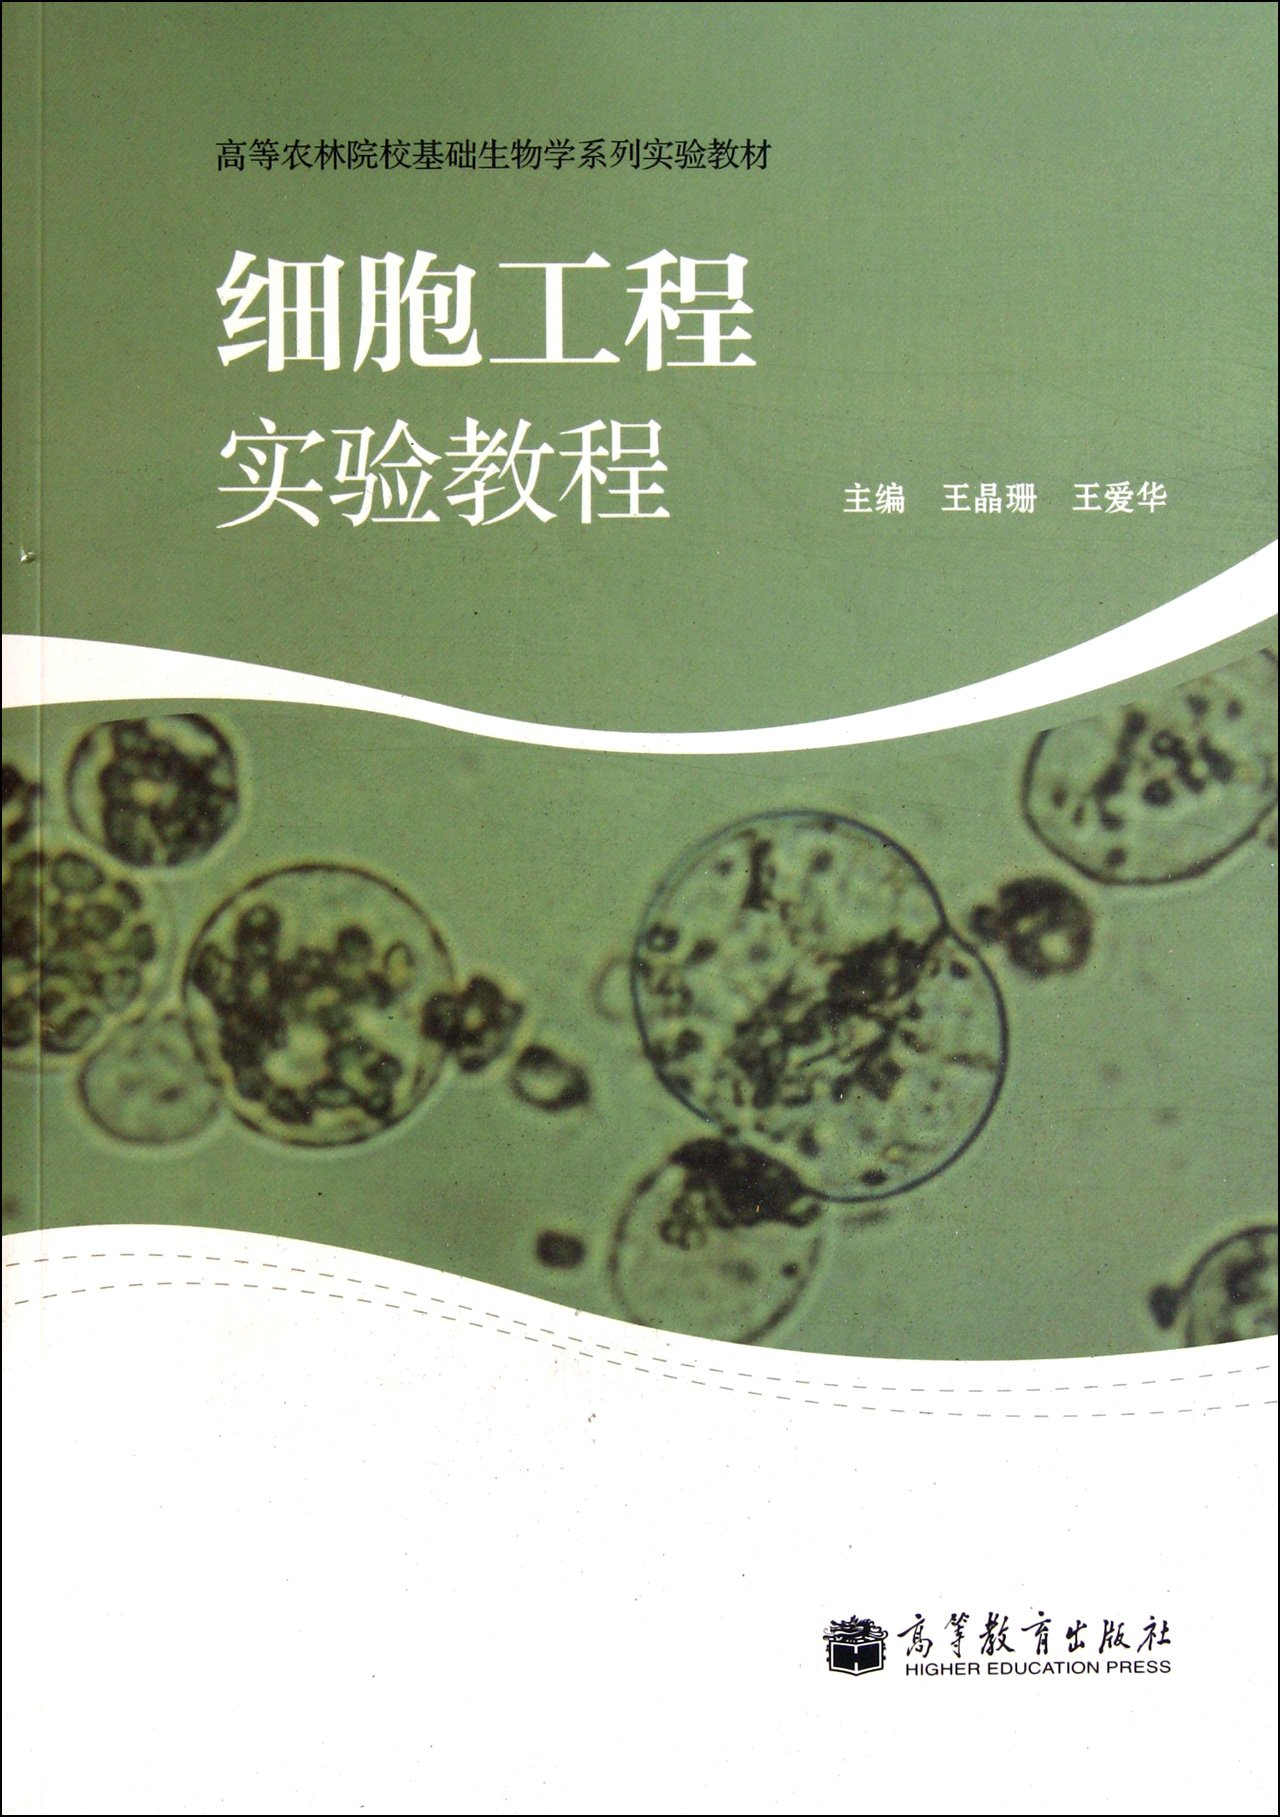 Download Experimental Course of Cell Engineering (Experimental Textbook of Basic Biology of Higher Agricultural University) (Chinese Edition) pdf epub